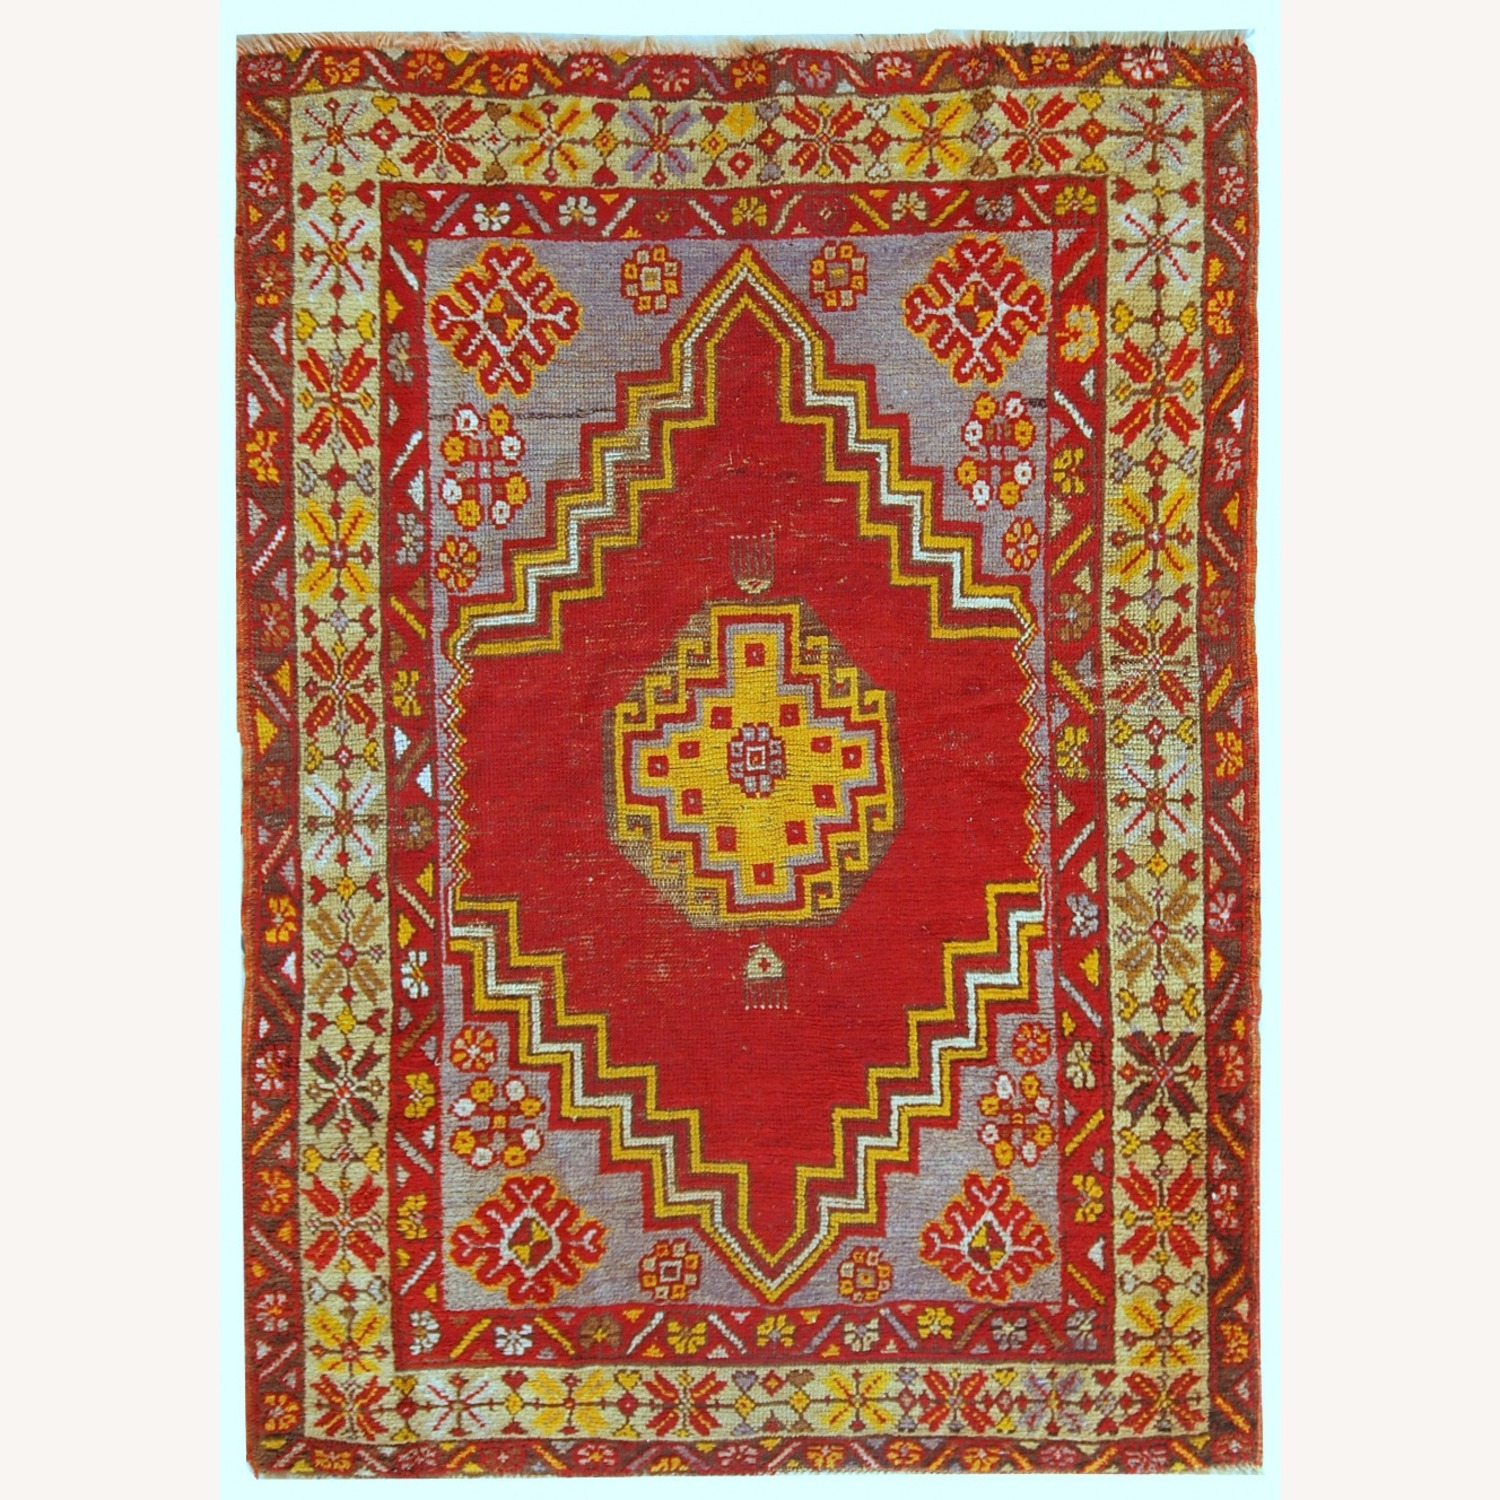 Handmade Antique Turkish Anatolian Rug - image-1